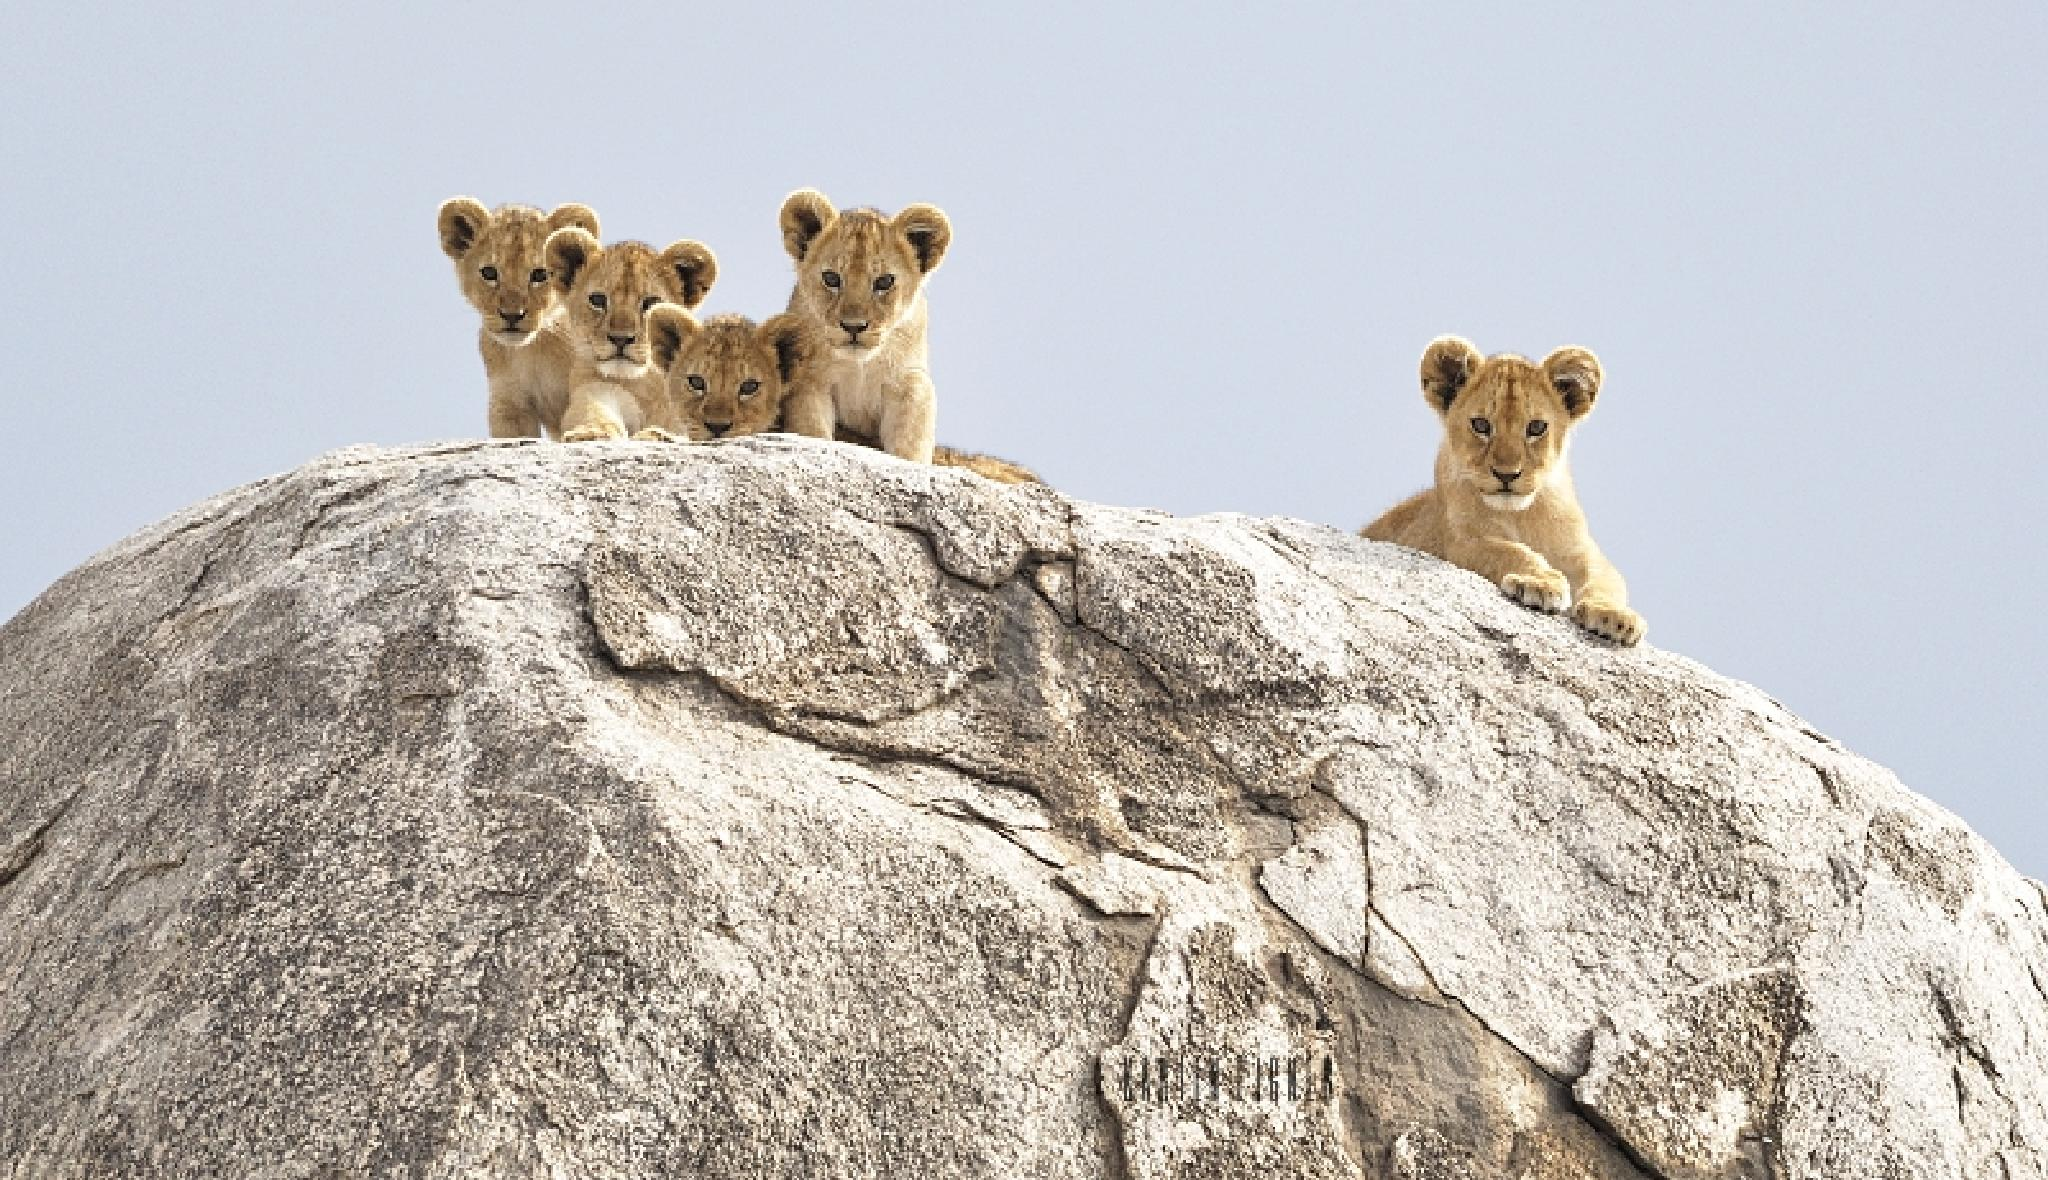 Lion cubs in the Serengeti by Karien Eigner